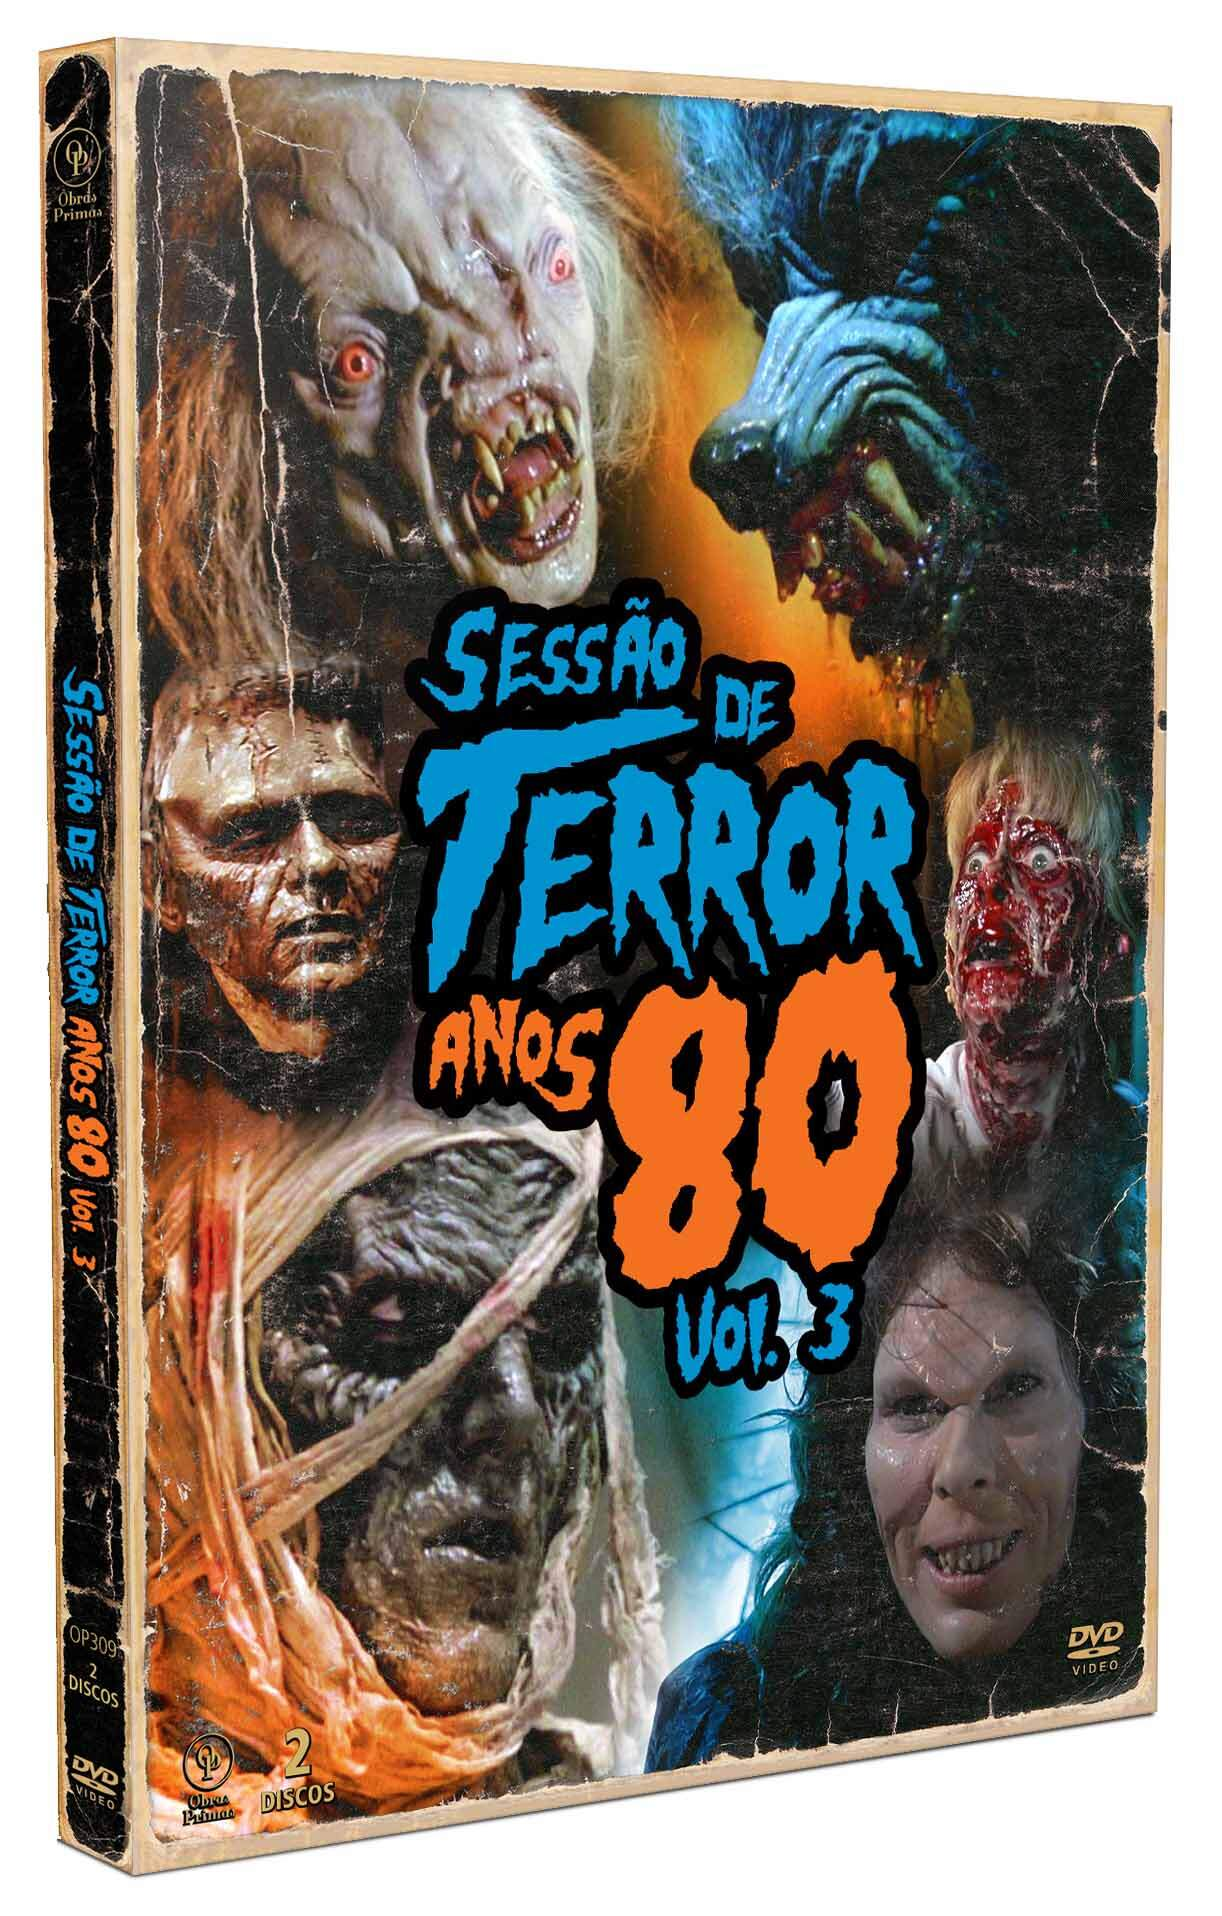 Sessão de Terror Anos 80 Vol. 3 [Digipak  2 DVDs] 4 CARDS   NOVO LACRADO